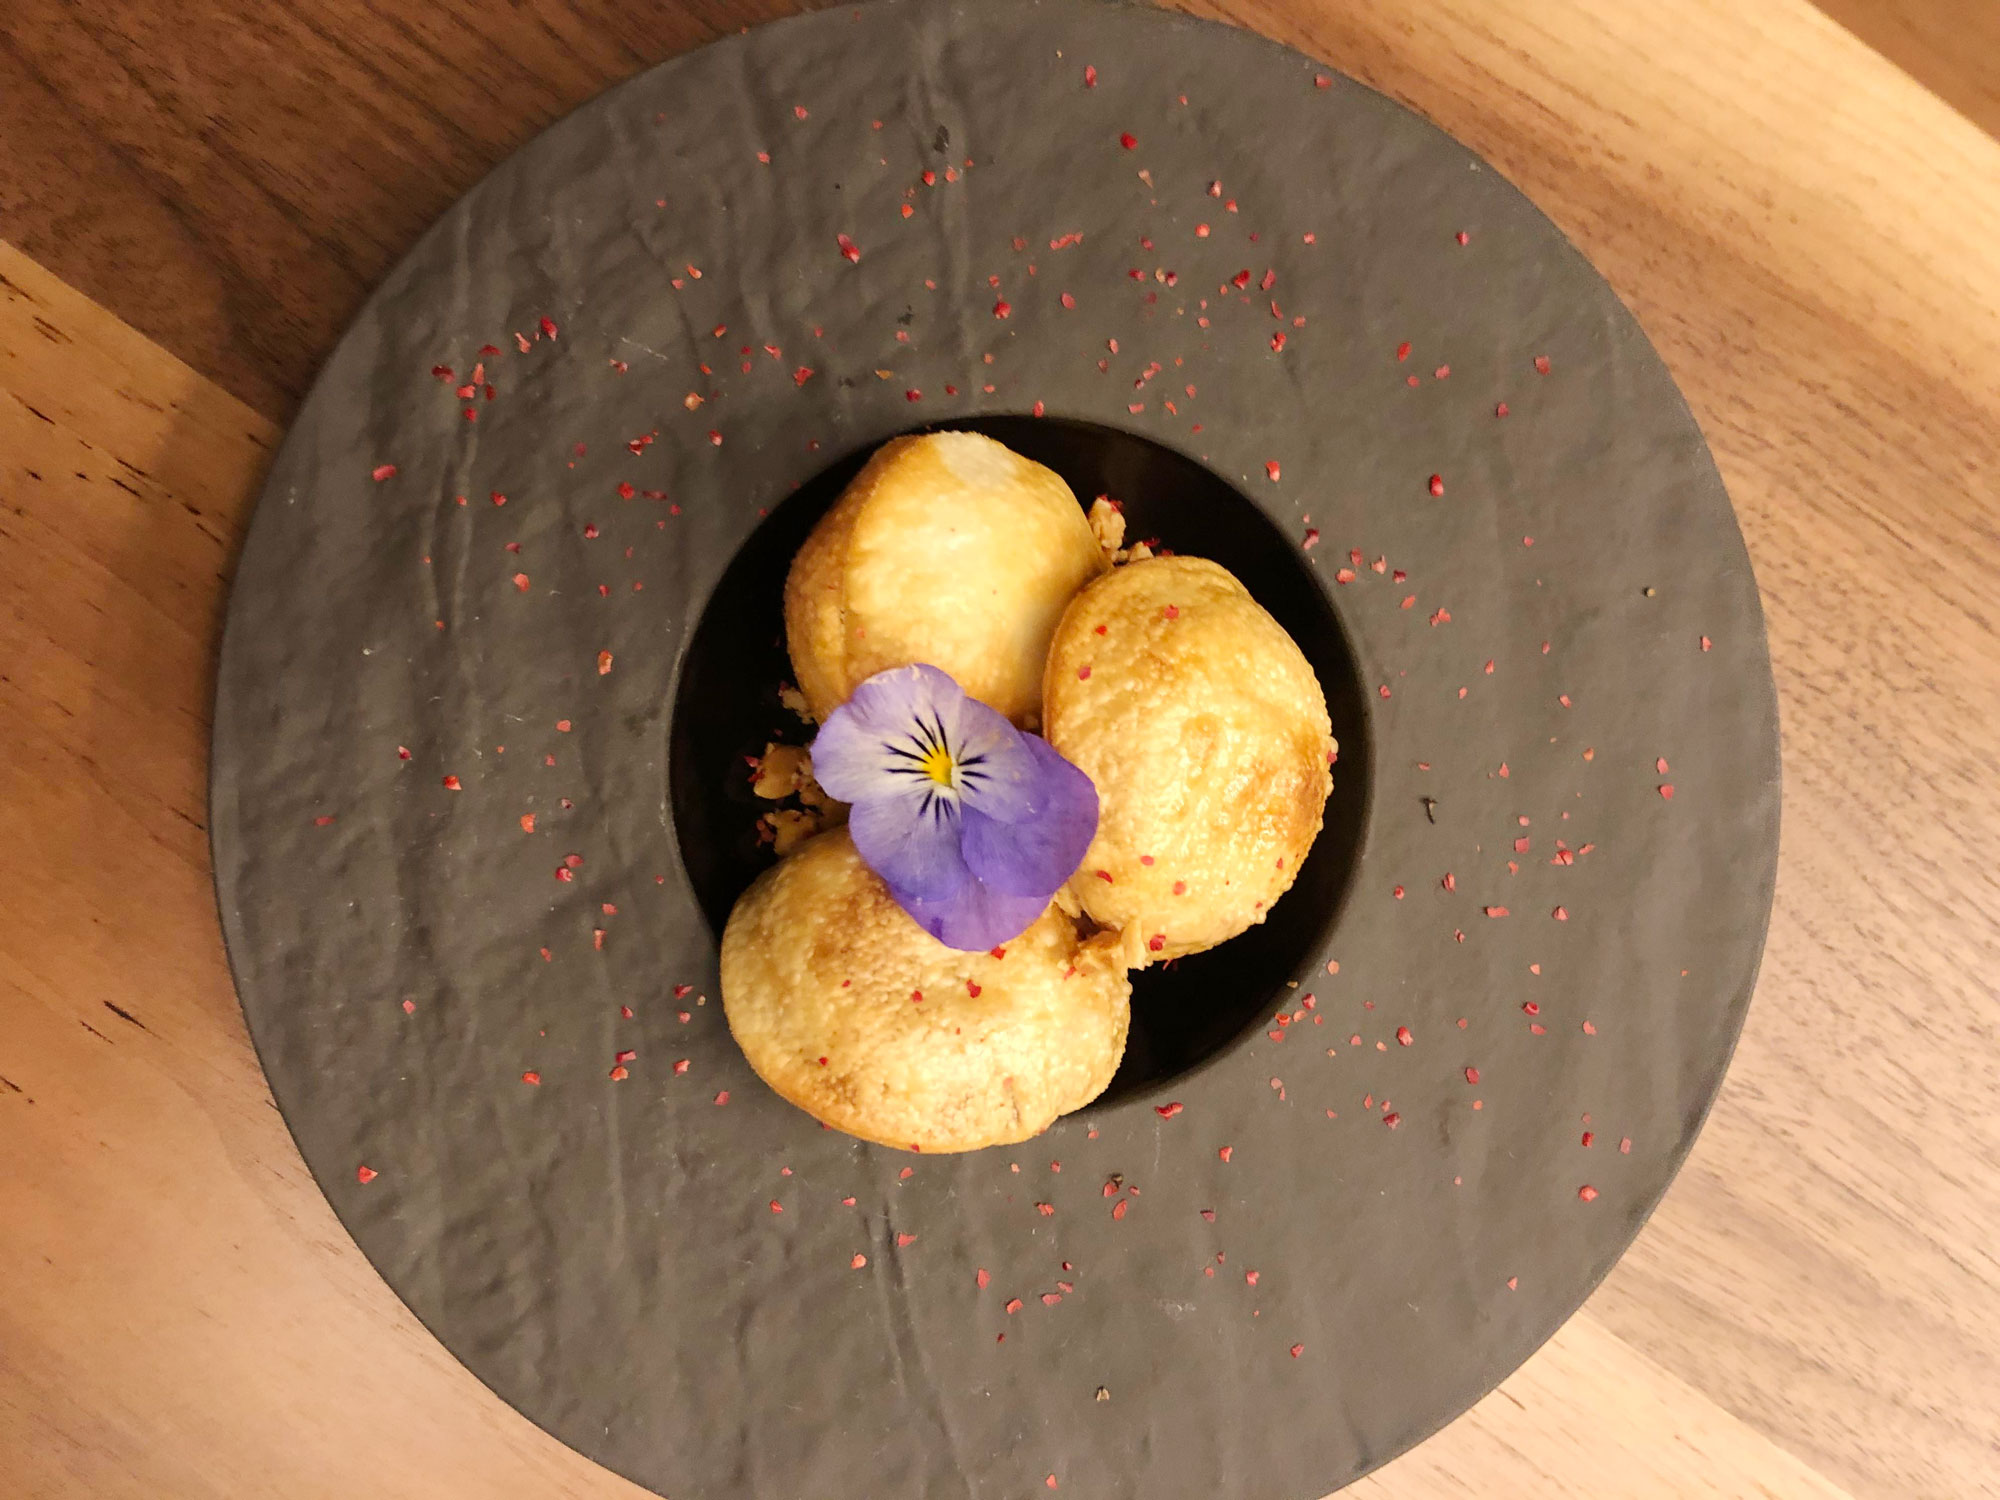 The round fried balls of crispy foie gras PB&J sit in a bowl topped with a purple flower.